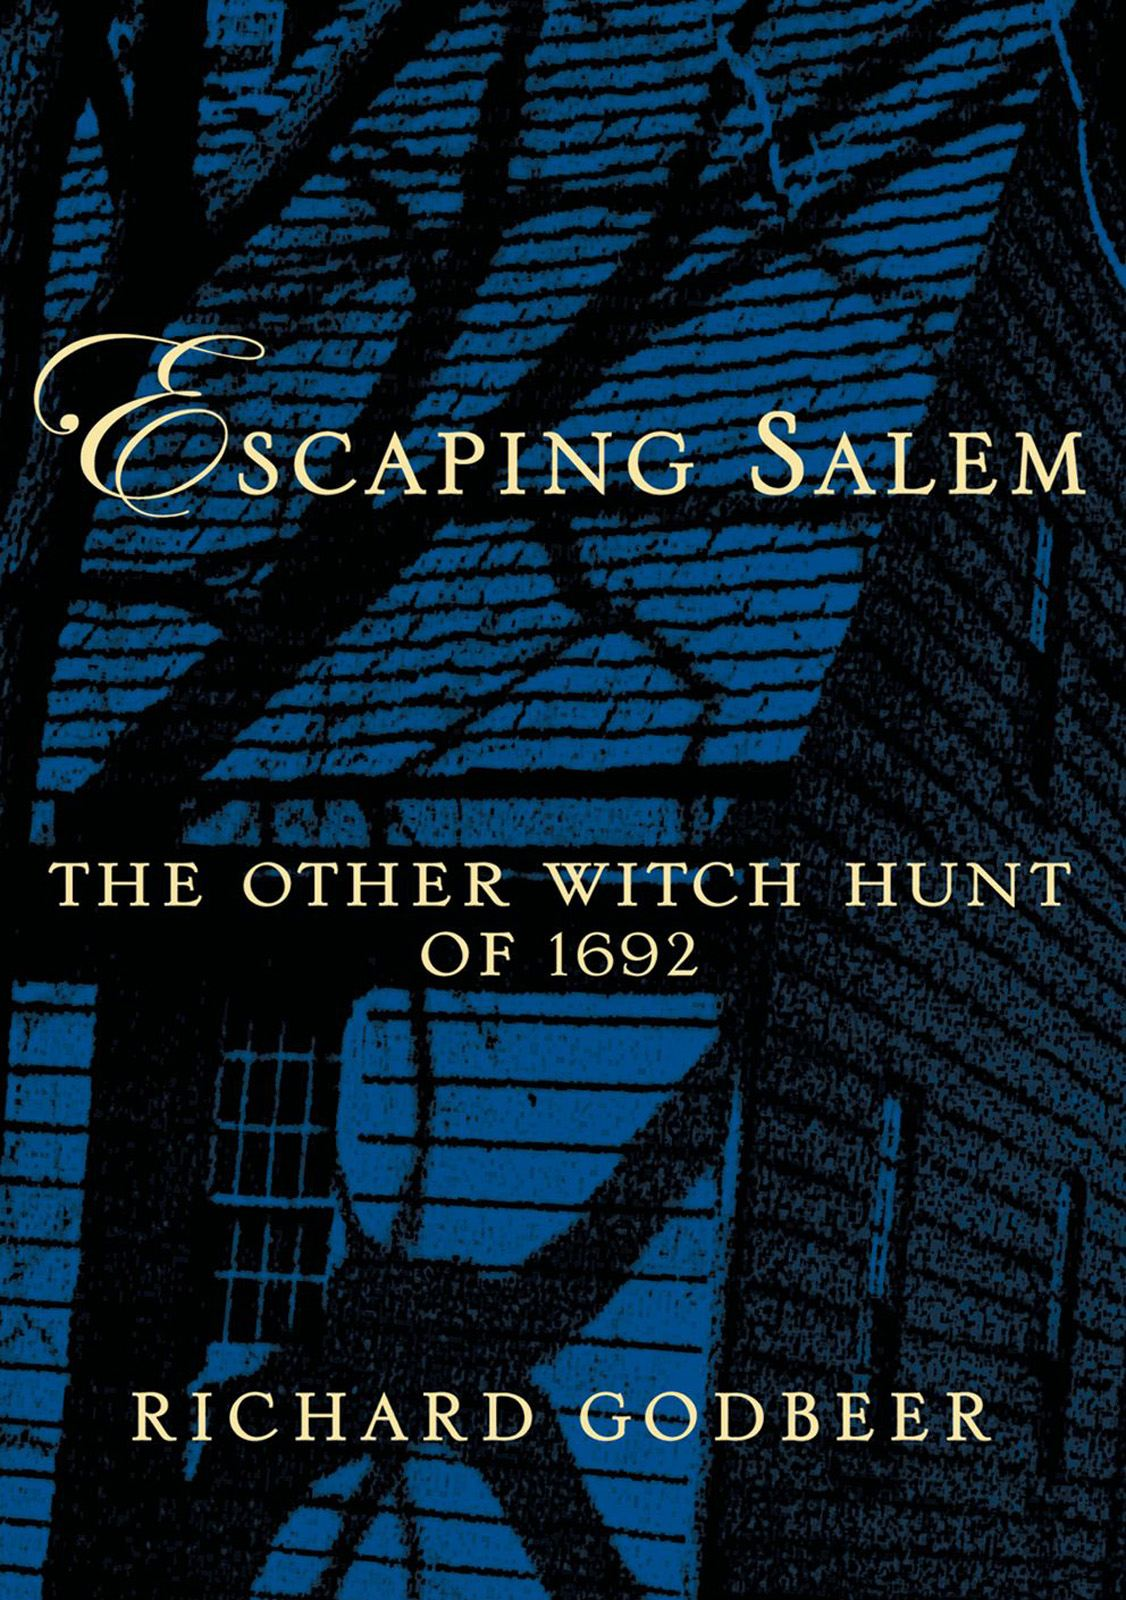 Escaping Salem:The Other Witch Hunt of 1692